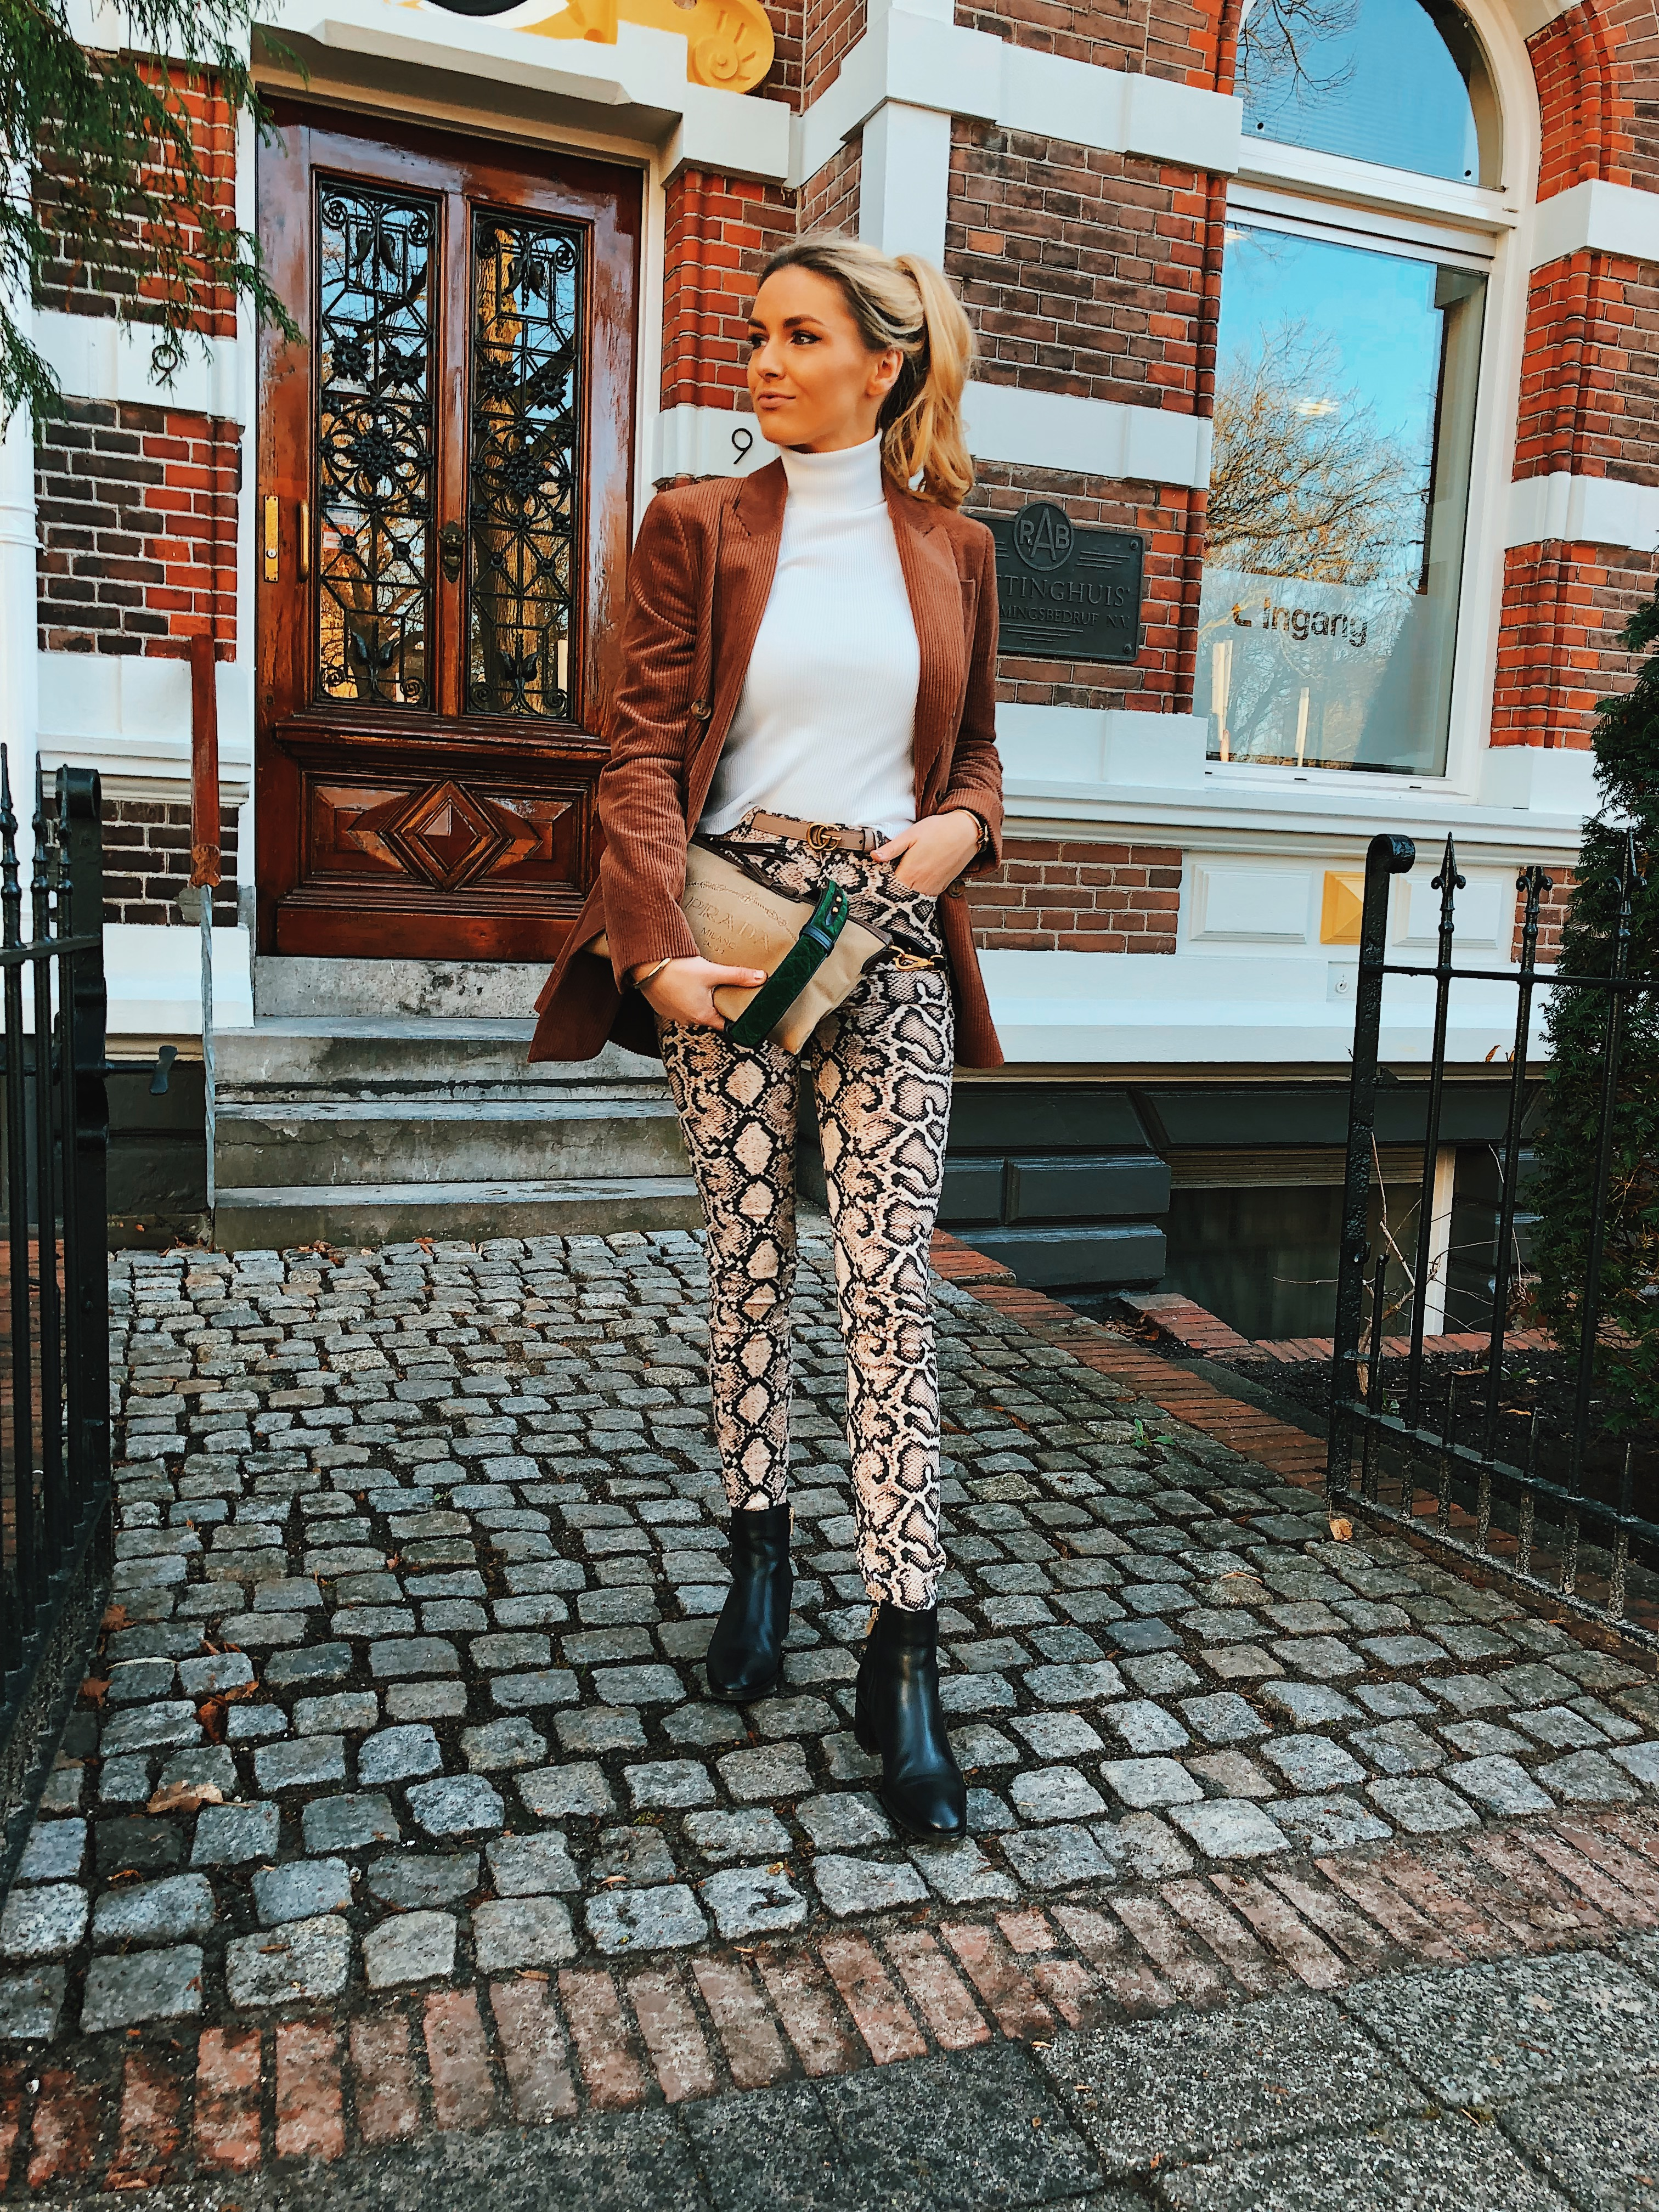 Brown & White toned outfit inspo